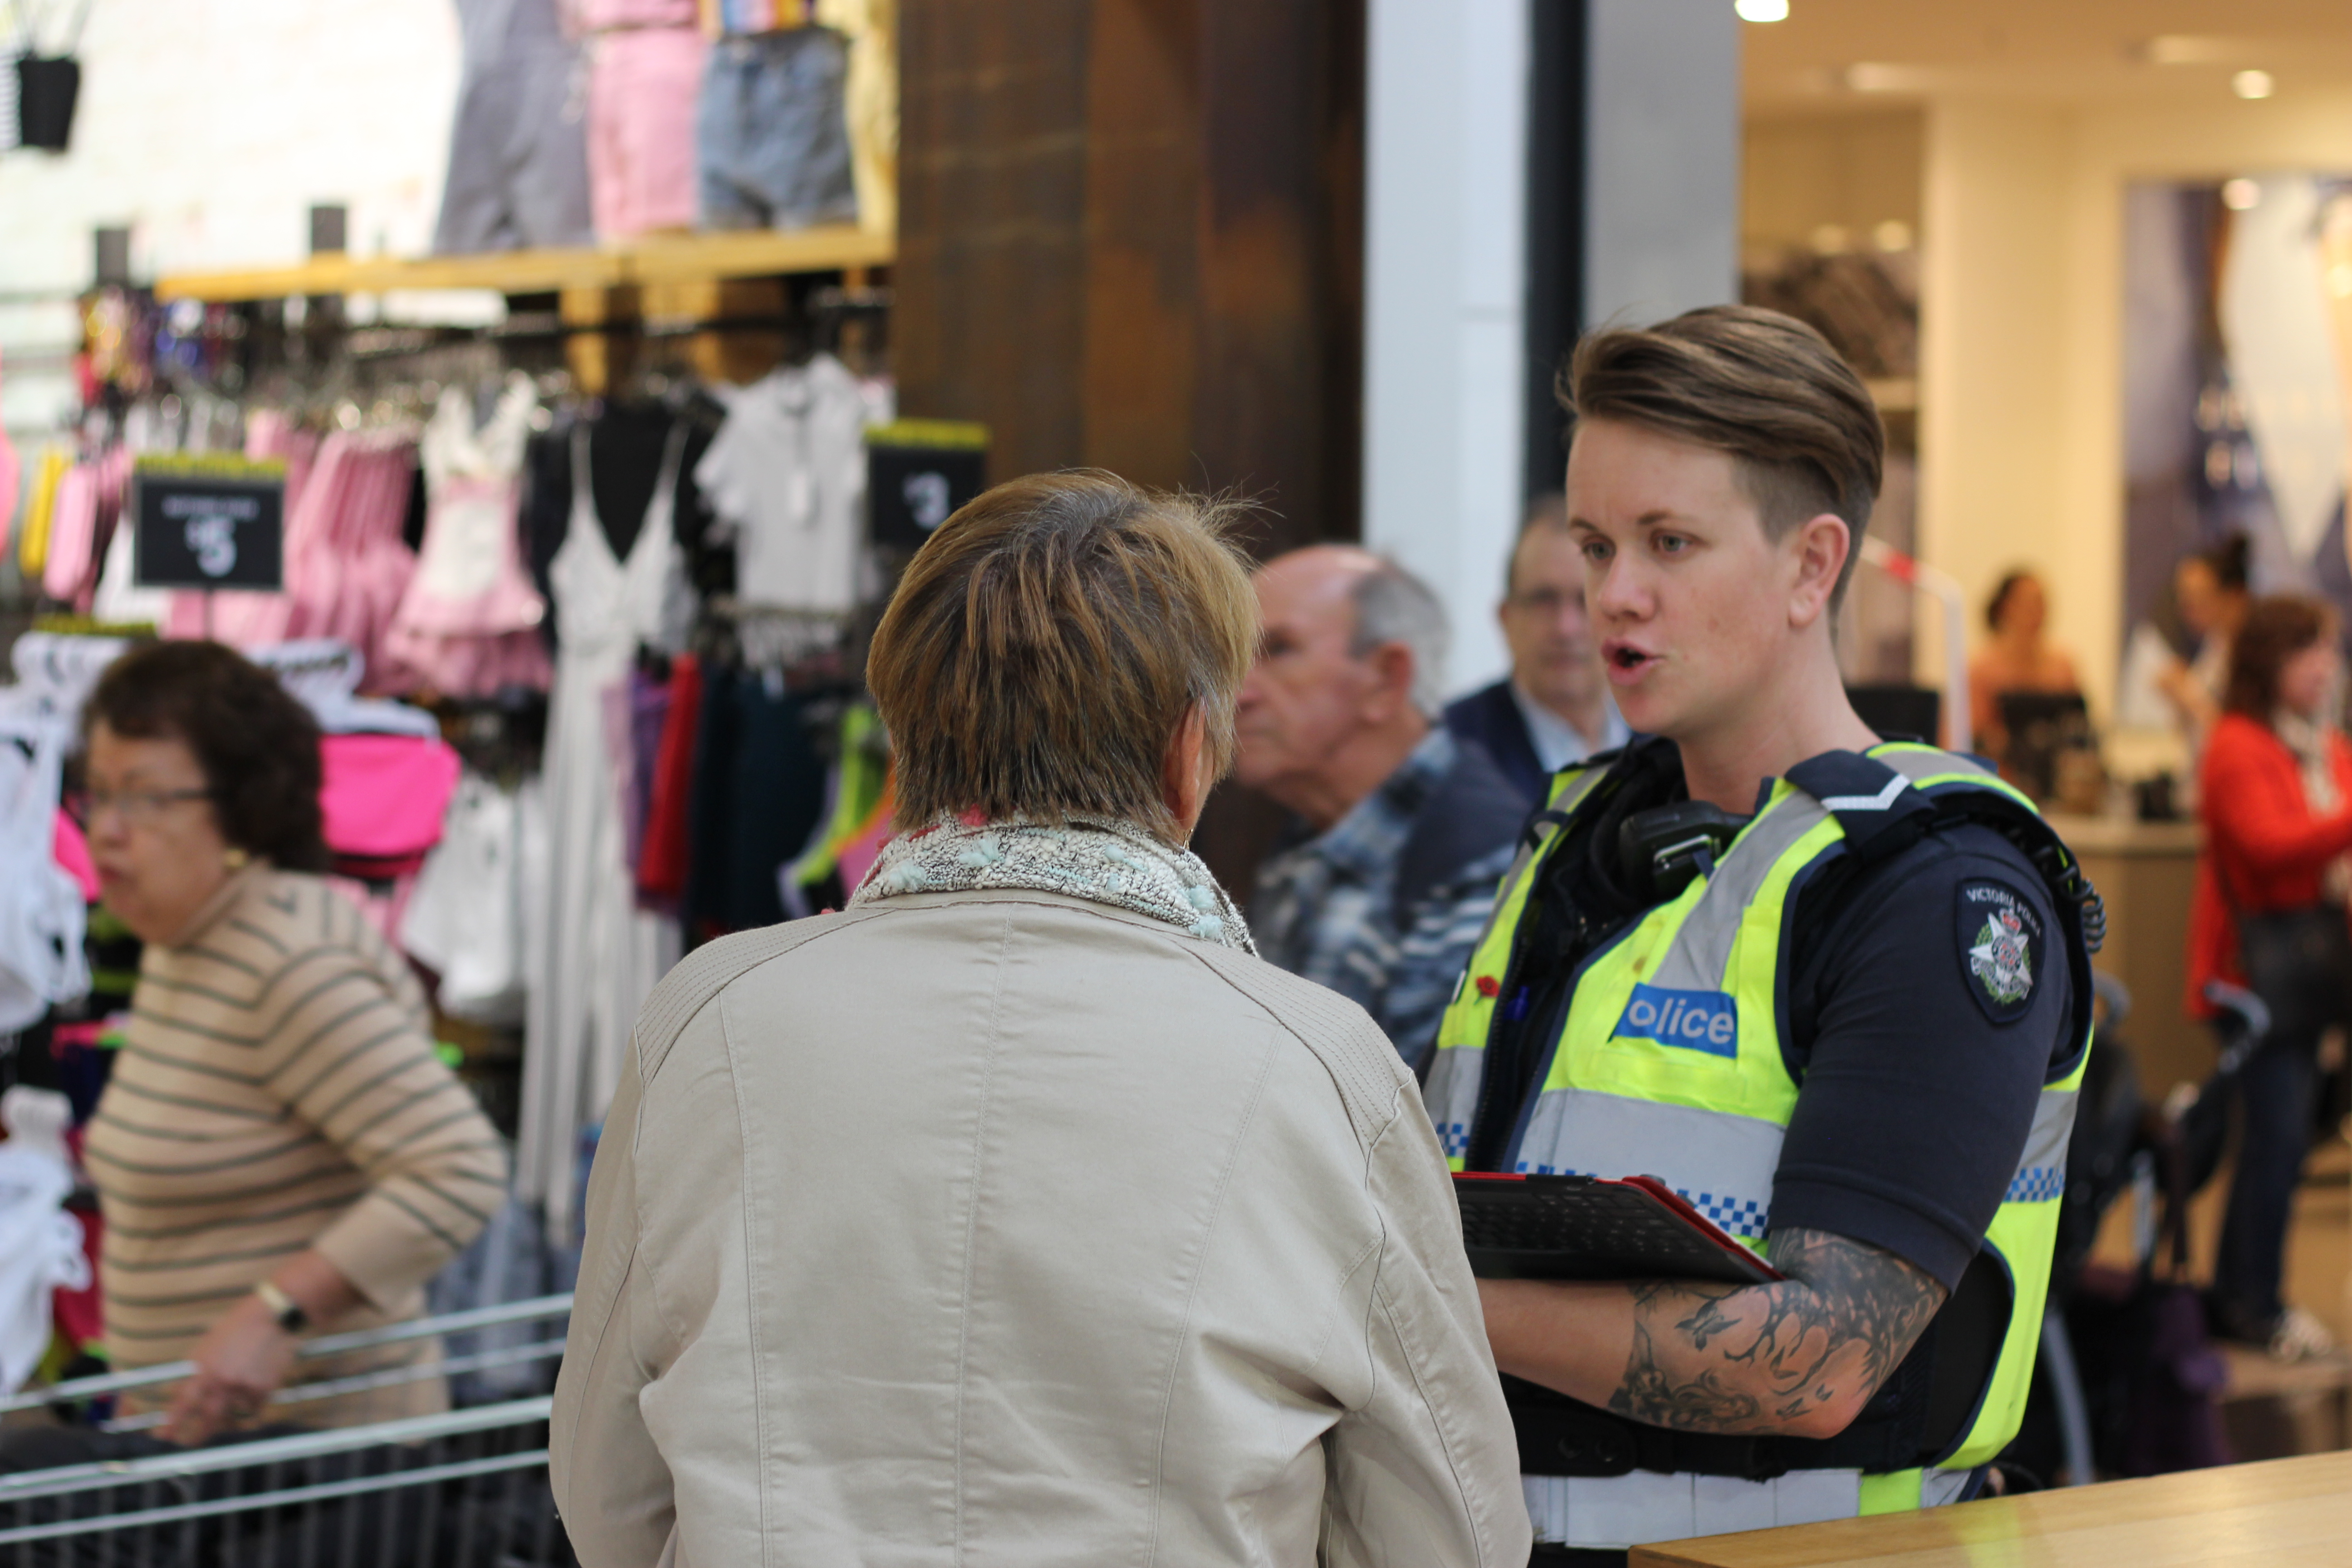 A police officer chats with a woman. They are standing in a shopping centre and there are shoppers in the background.